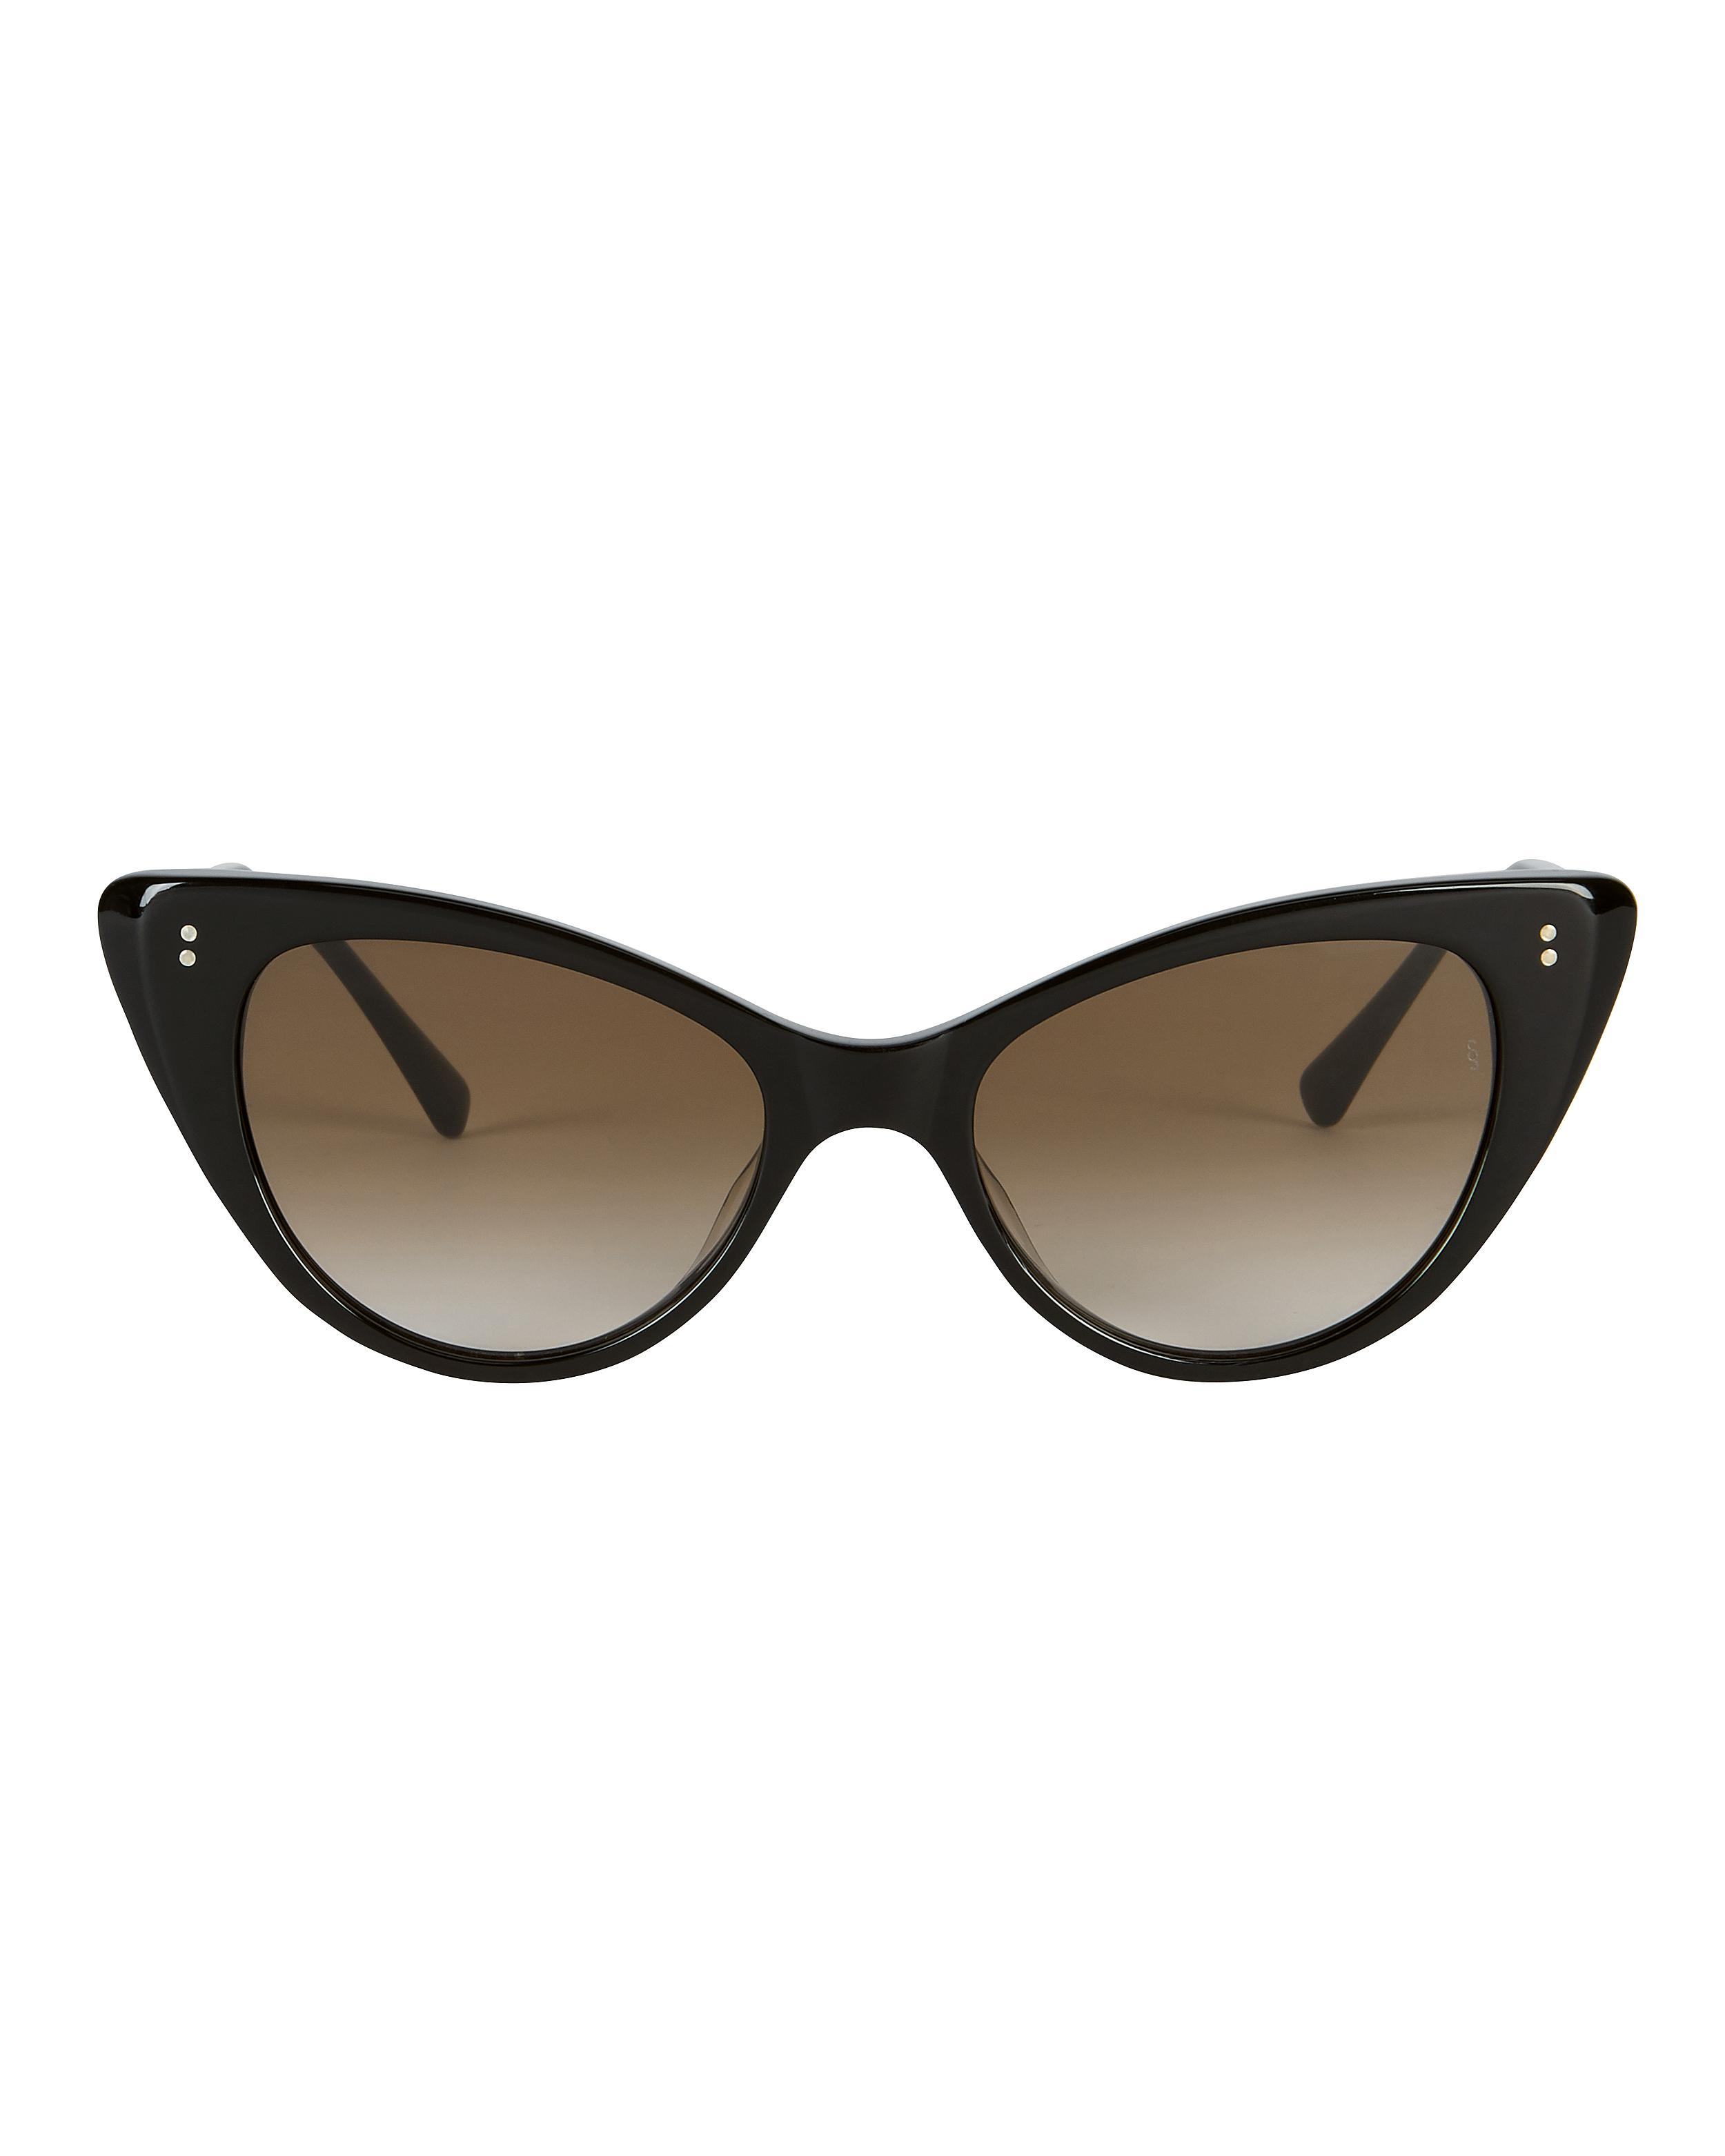 09c1a9557f Lyst - Sunday Somewhere Piper Sunglasses in Black